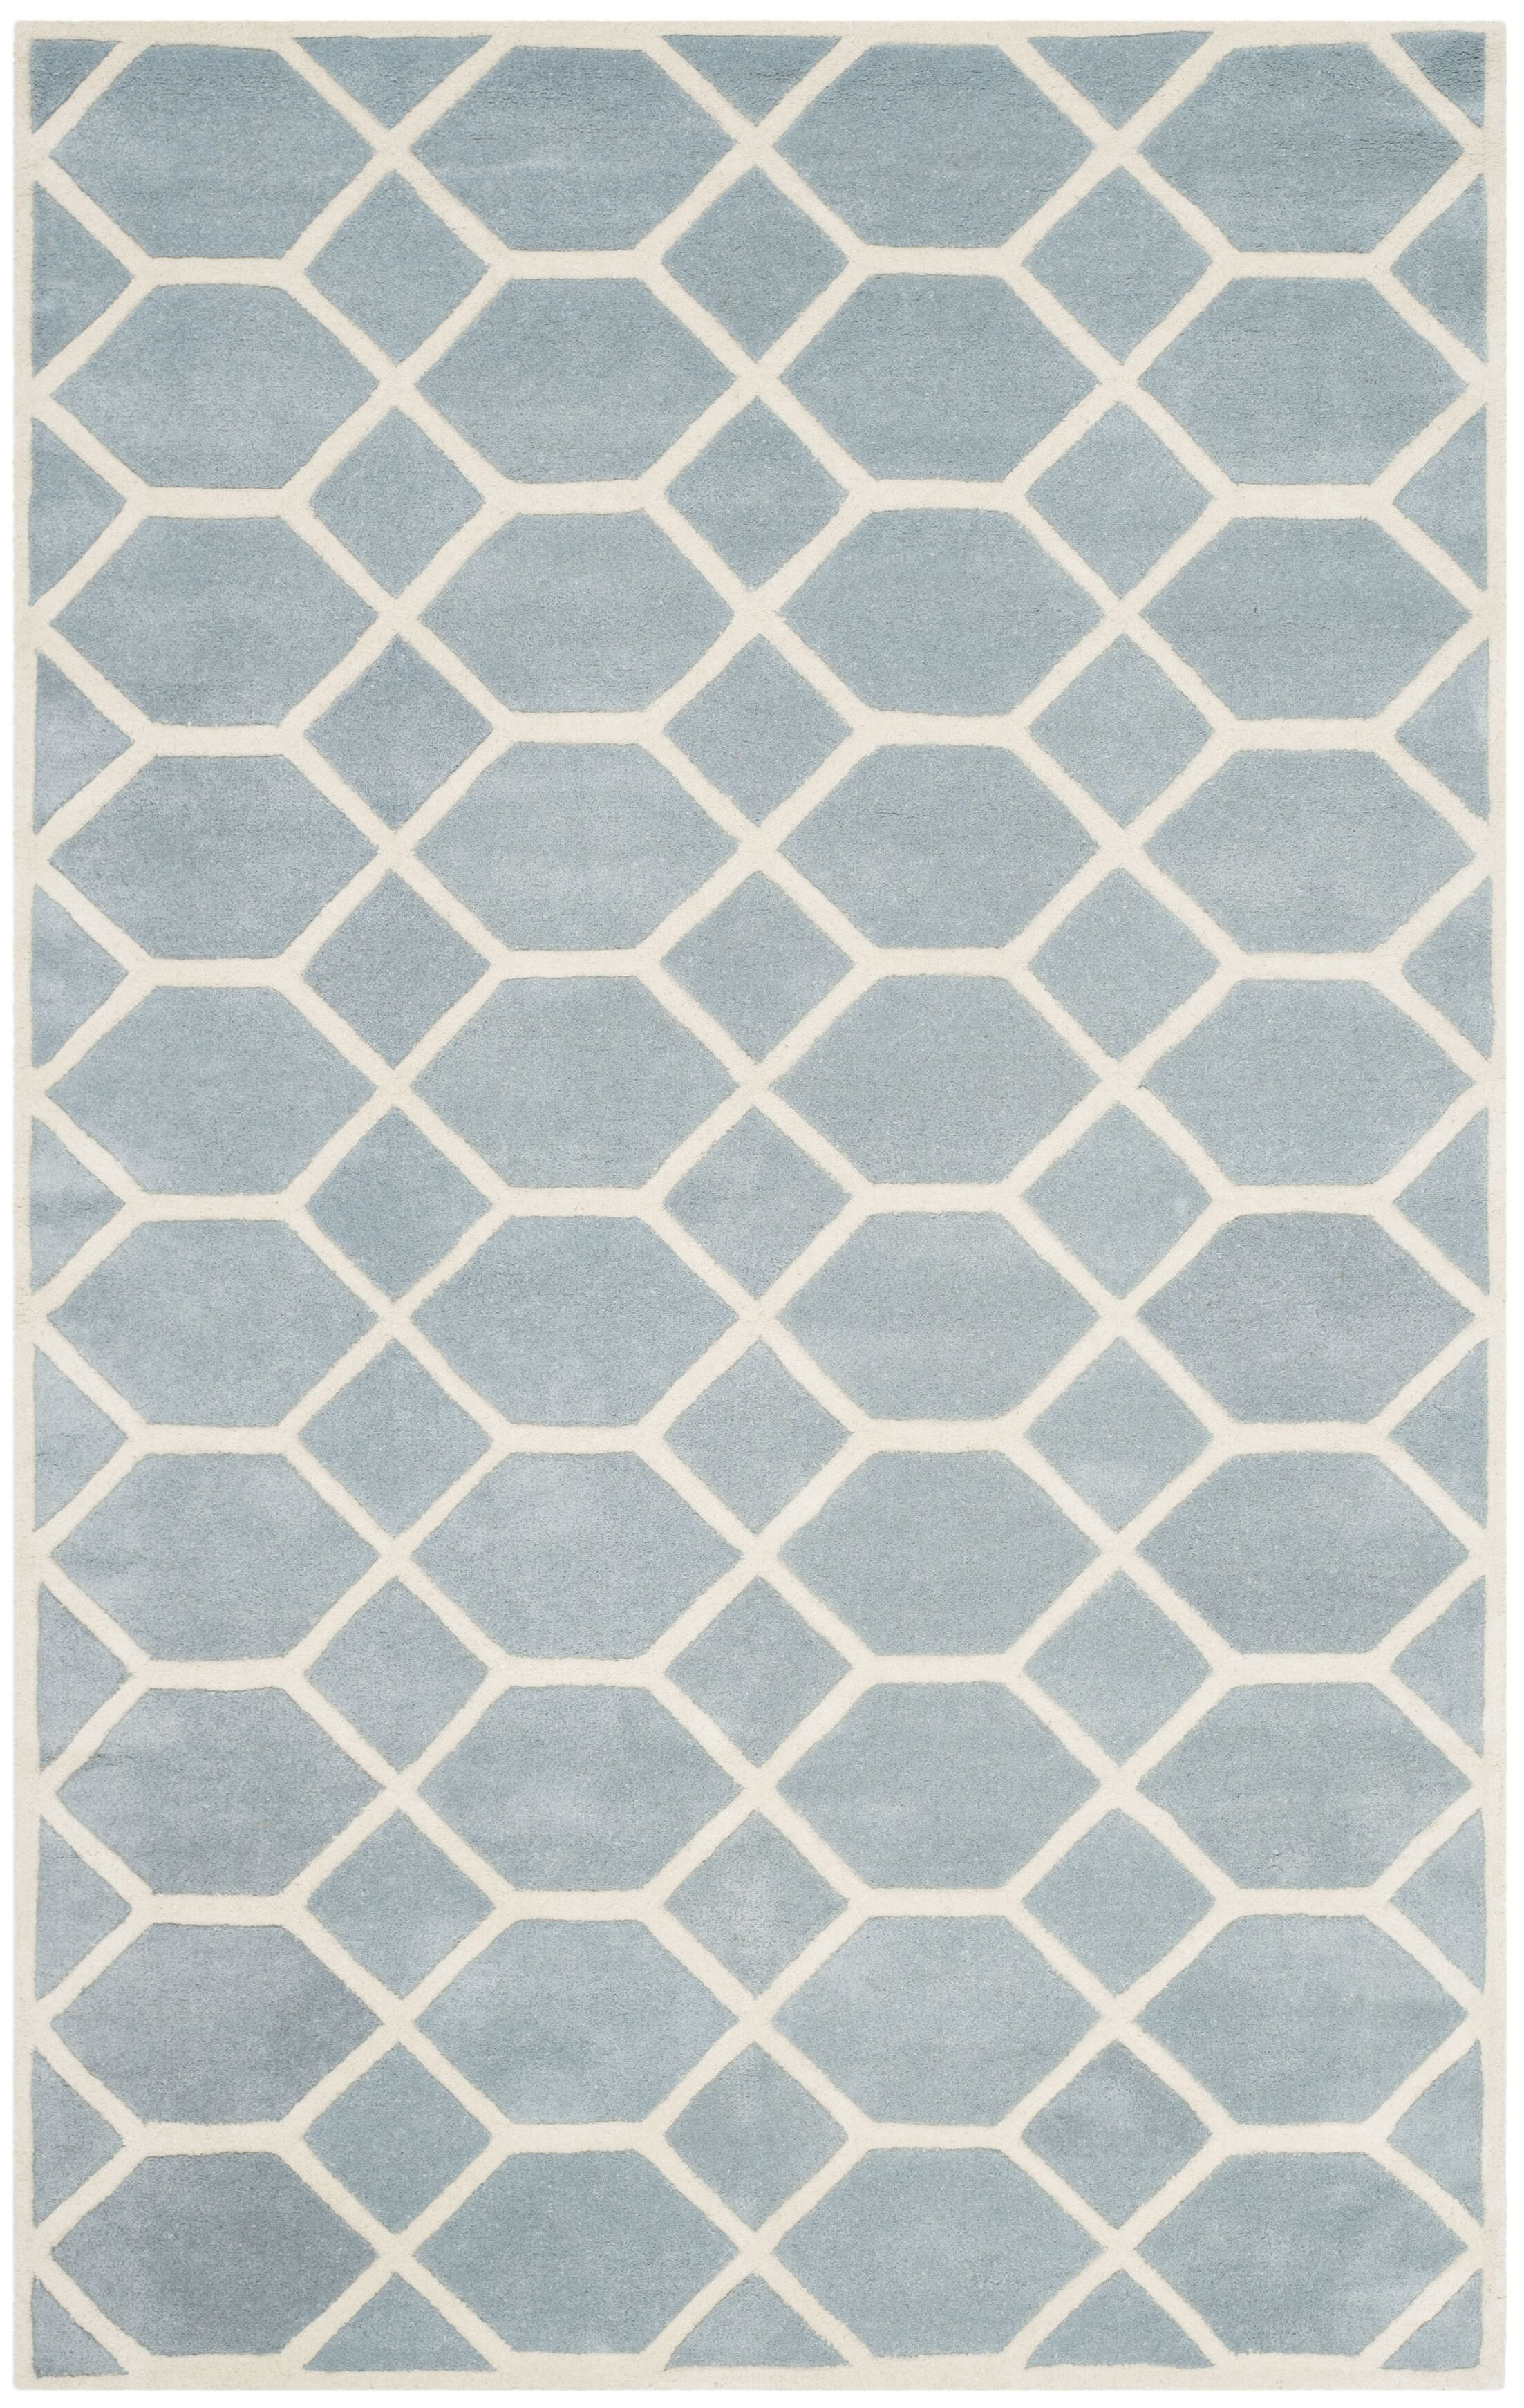 Wilkin Blue / Ivory Area Rug Rug Size: Rectangle 4' x 6'